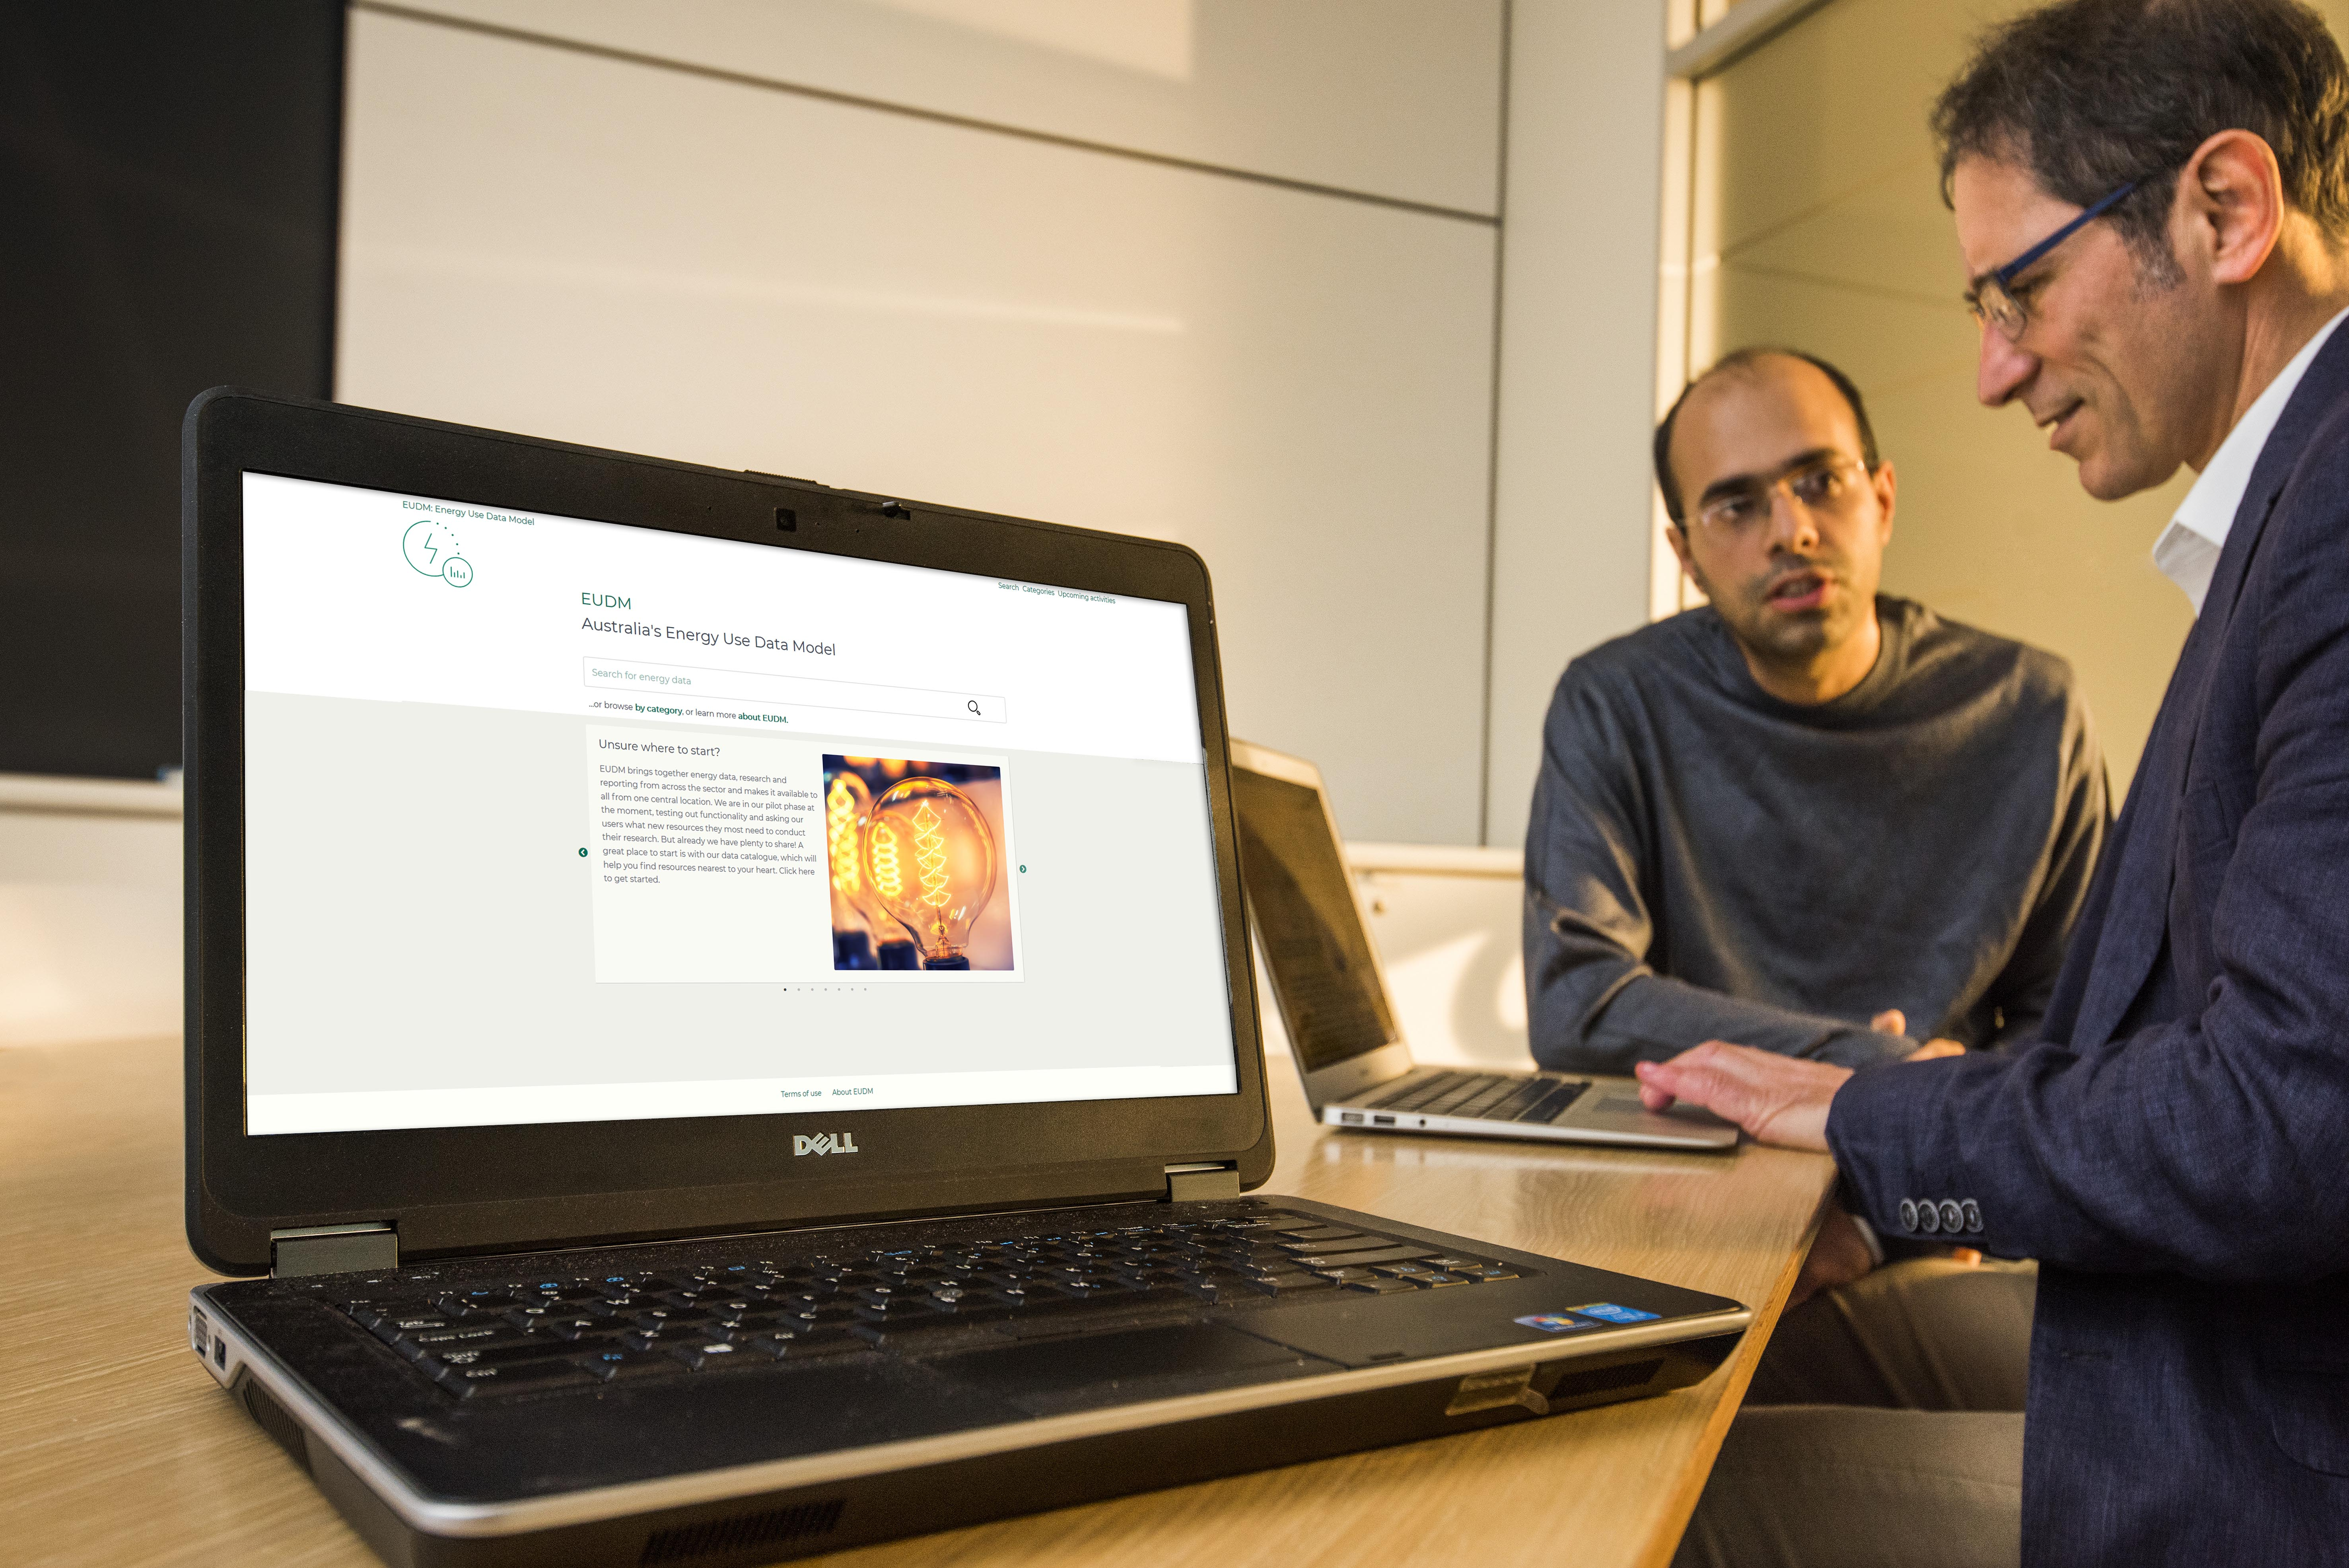 Scientists working on EUDM website on laptop